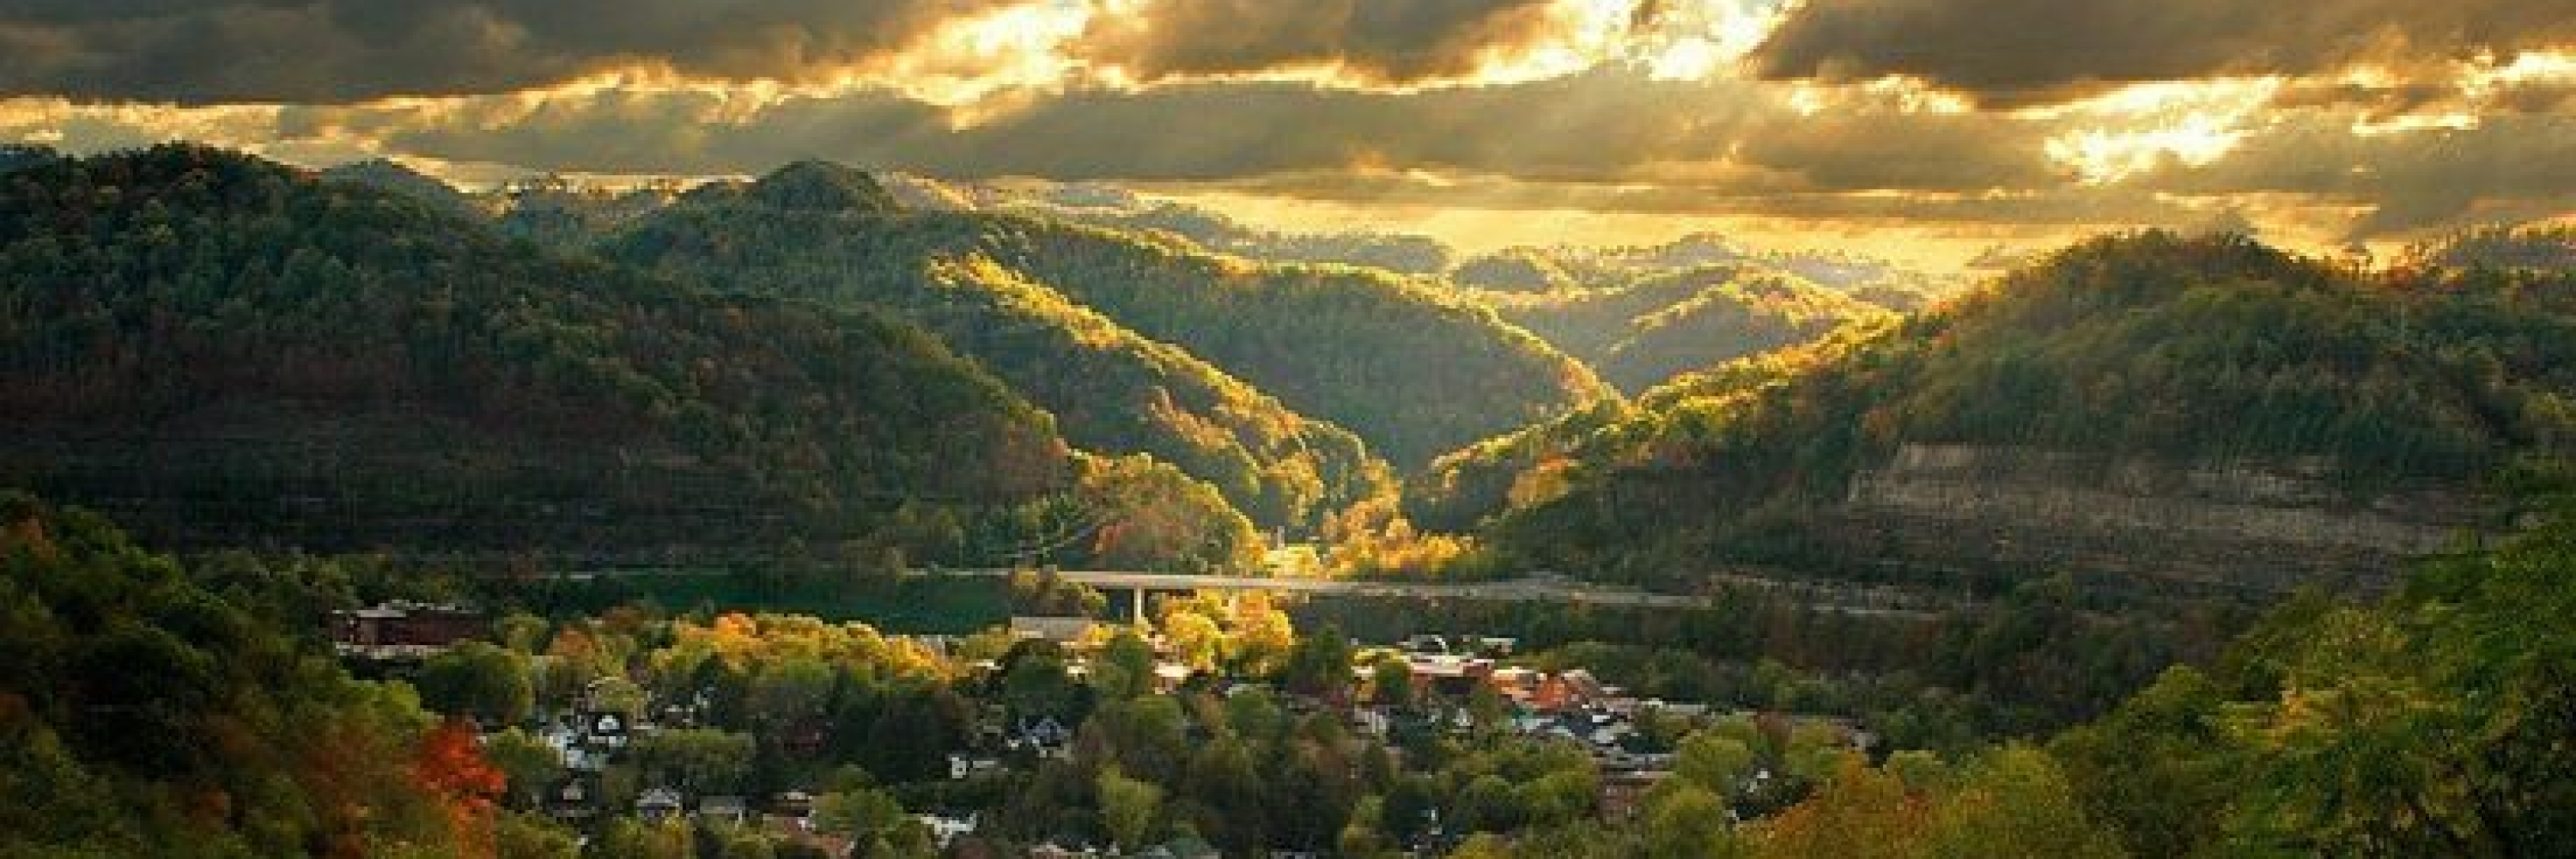 Providing scholarships for the future leaders of Appalachia